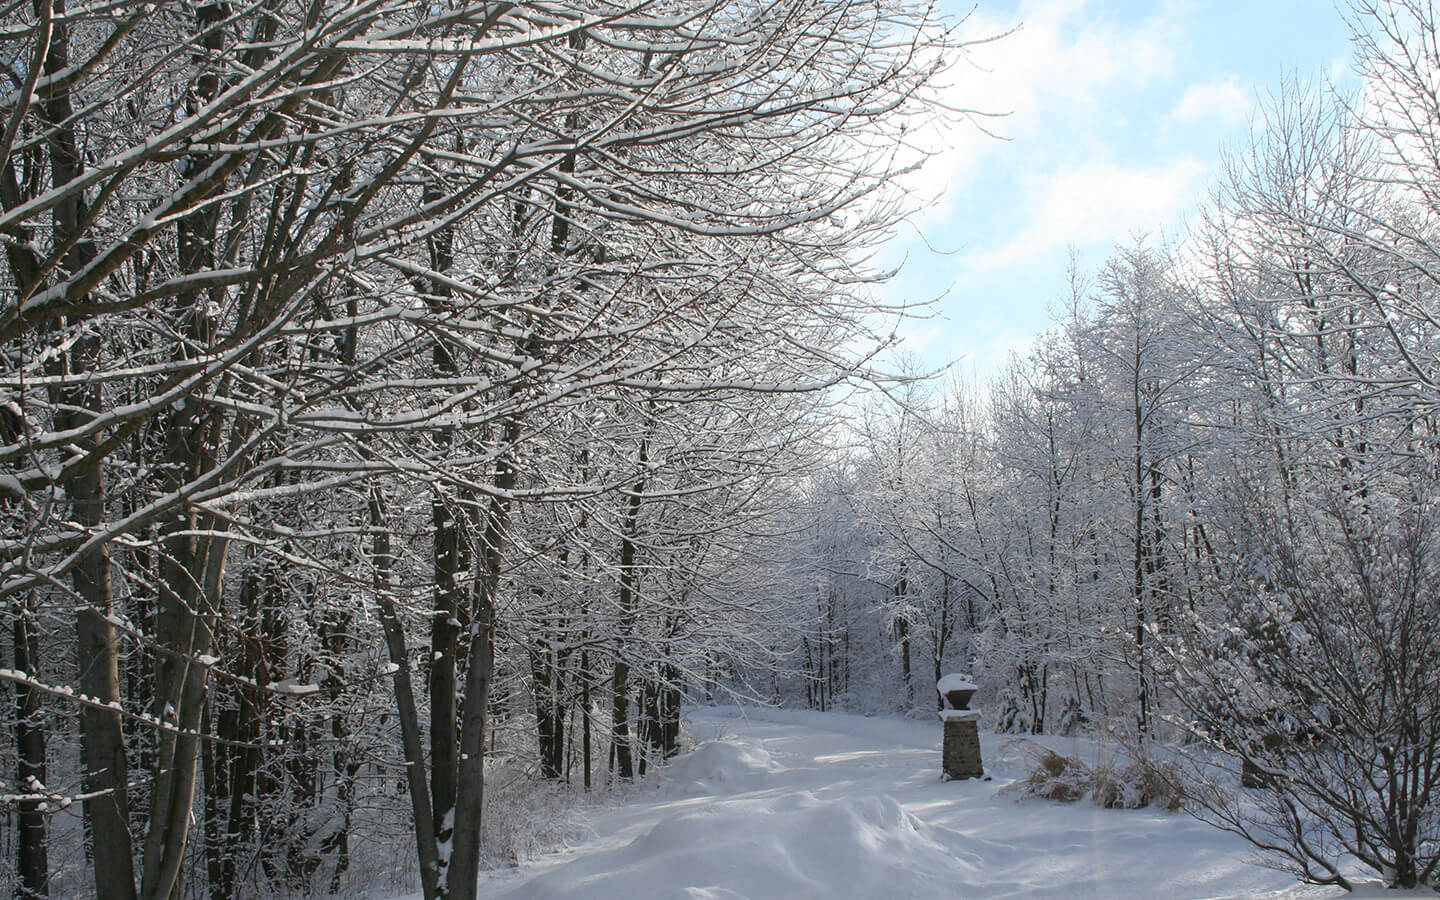 Snowshoe trails and hiking during a winter getaway in Michigan